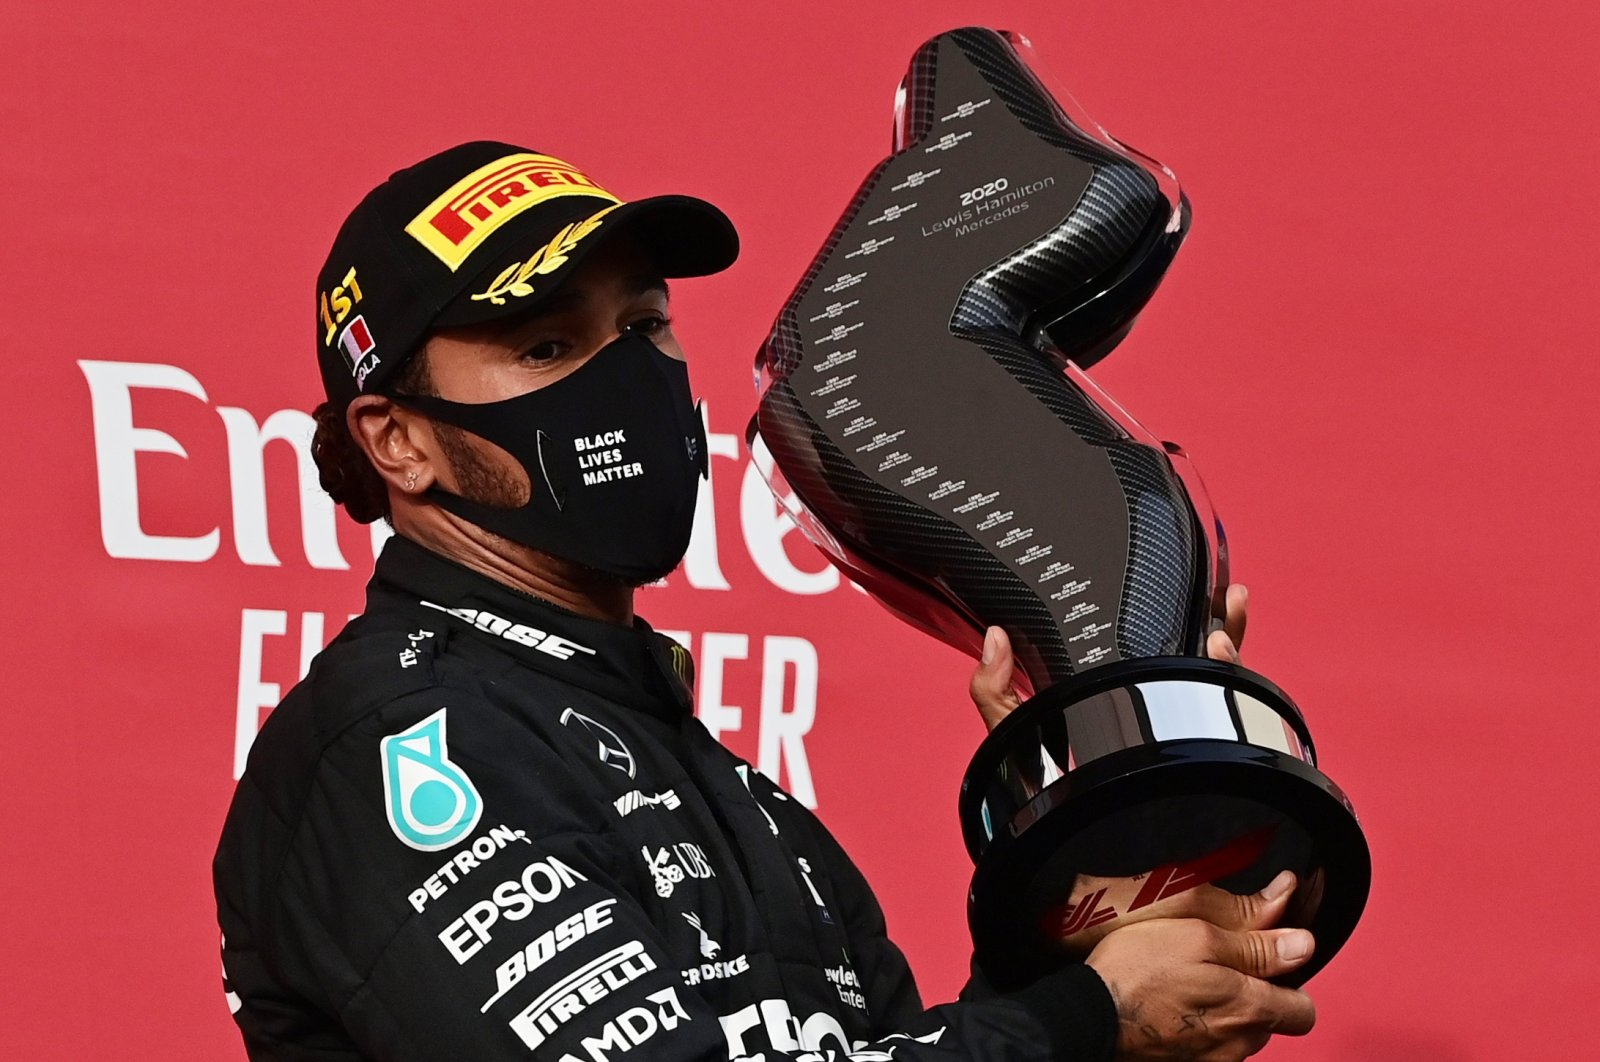 Mercedes' Lewis Hamilton celebrates on the podium with the trophy after winning the Emilia Romagna Grand Prix, Imola, Italy, Nov. 1, 2020. (Reuters Photo)